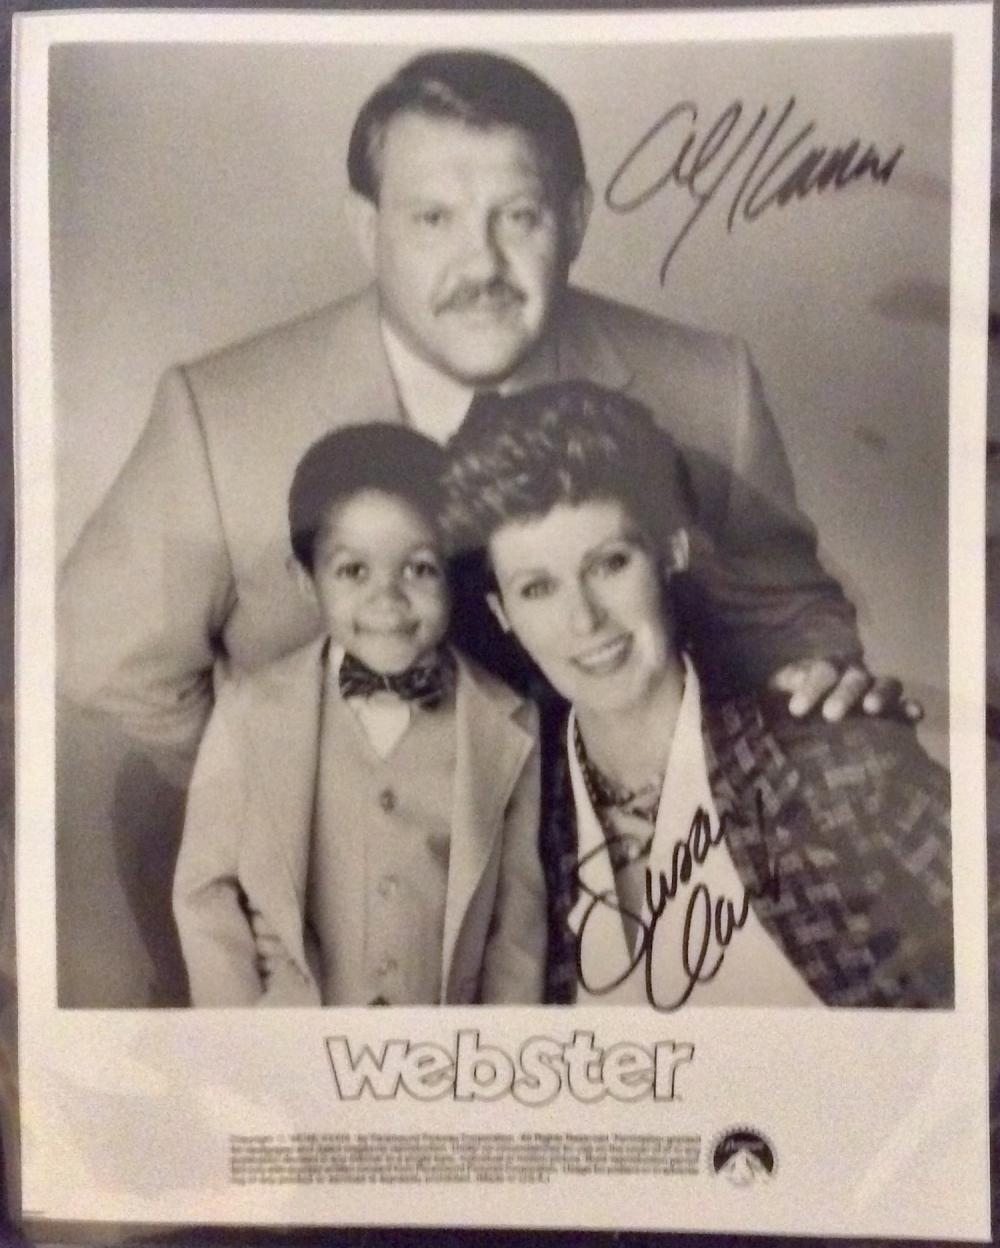 Alex Karras & Susan Clark 8X10 Autographed Photo of Noted American Actors Alex Karras & Susan Clark